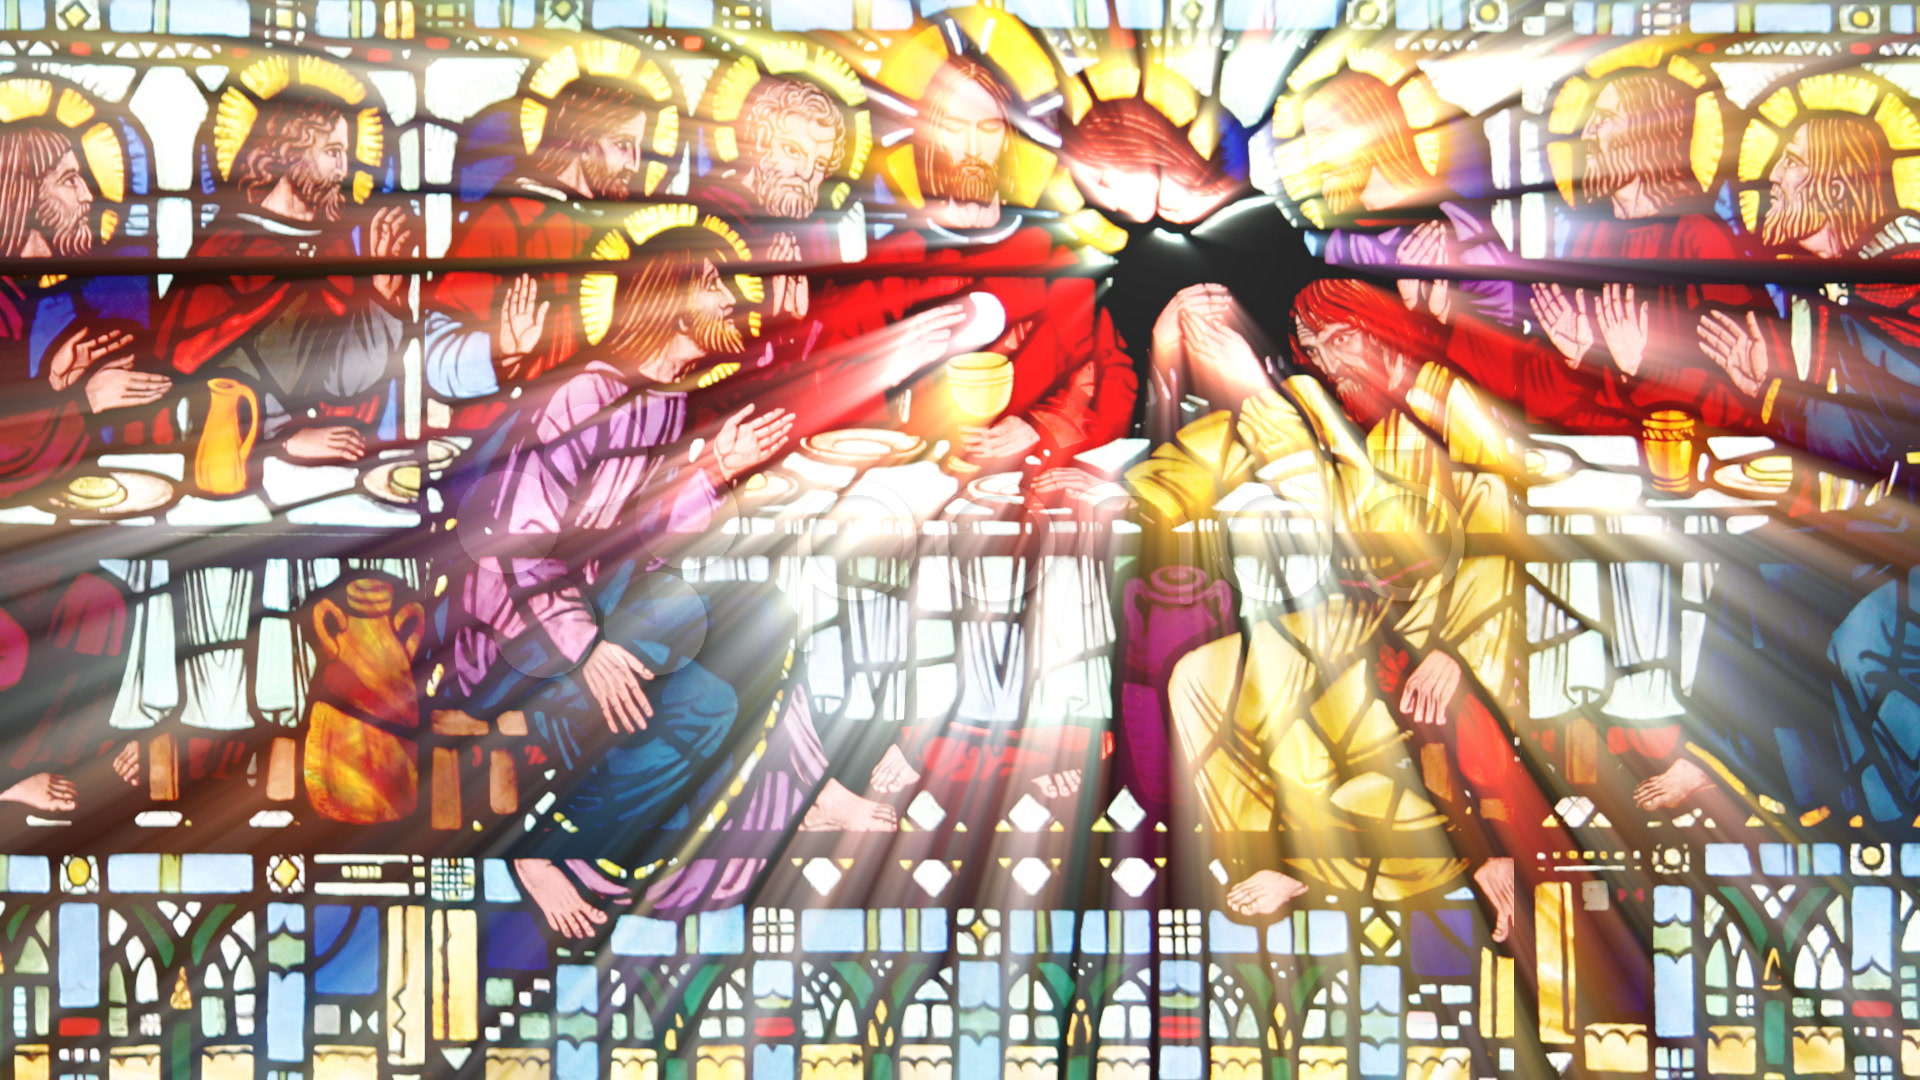 stained-glass-last-supper-loop-footage-000724611_prevstill